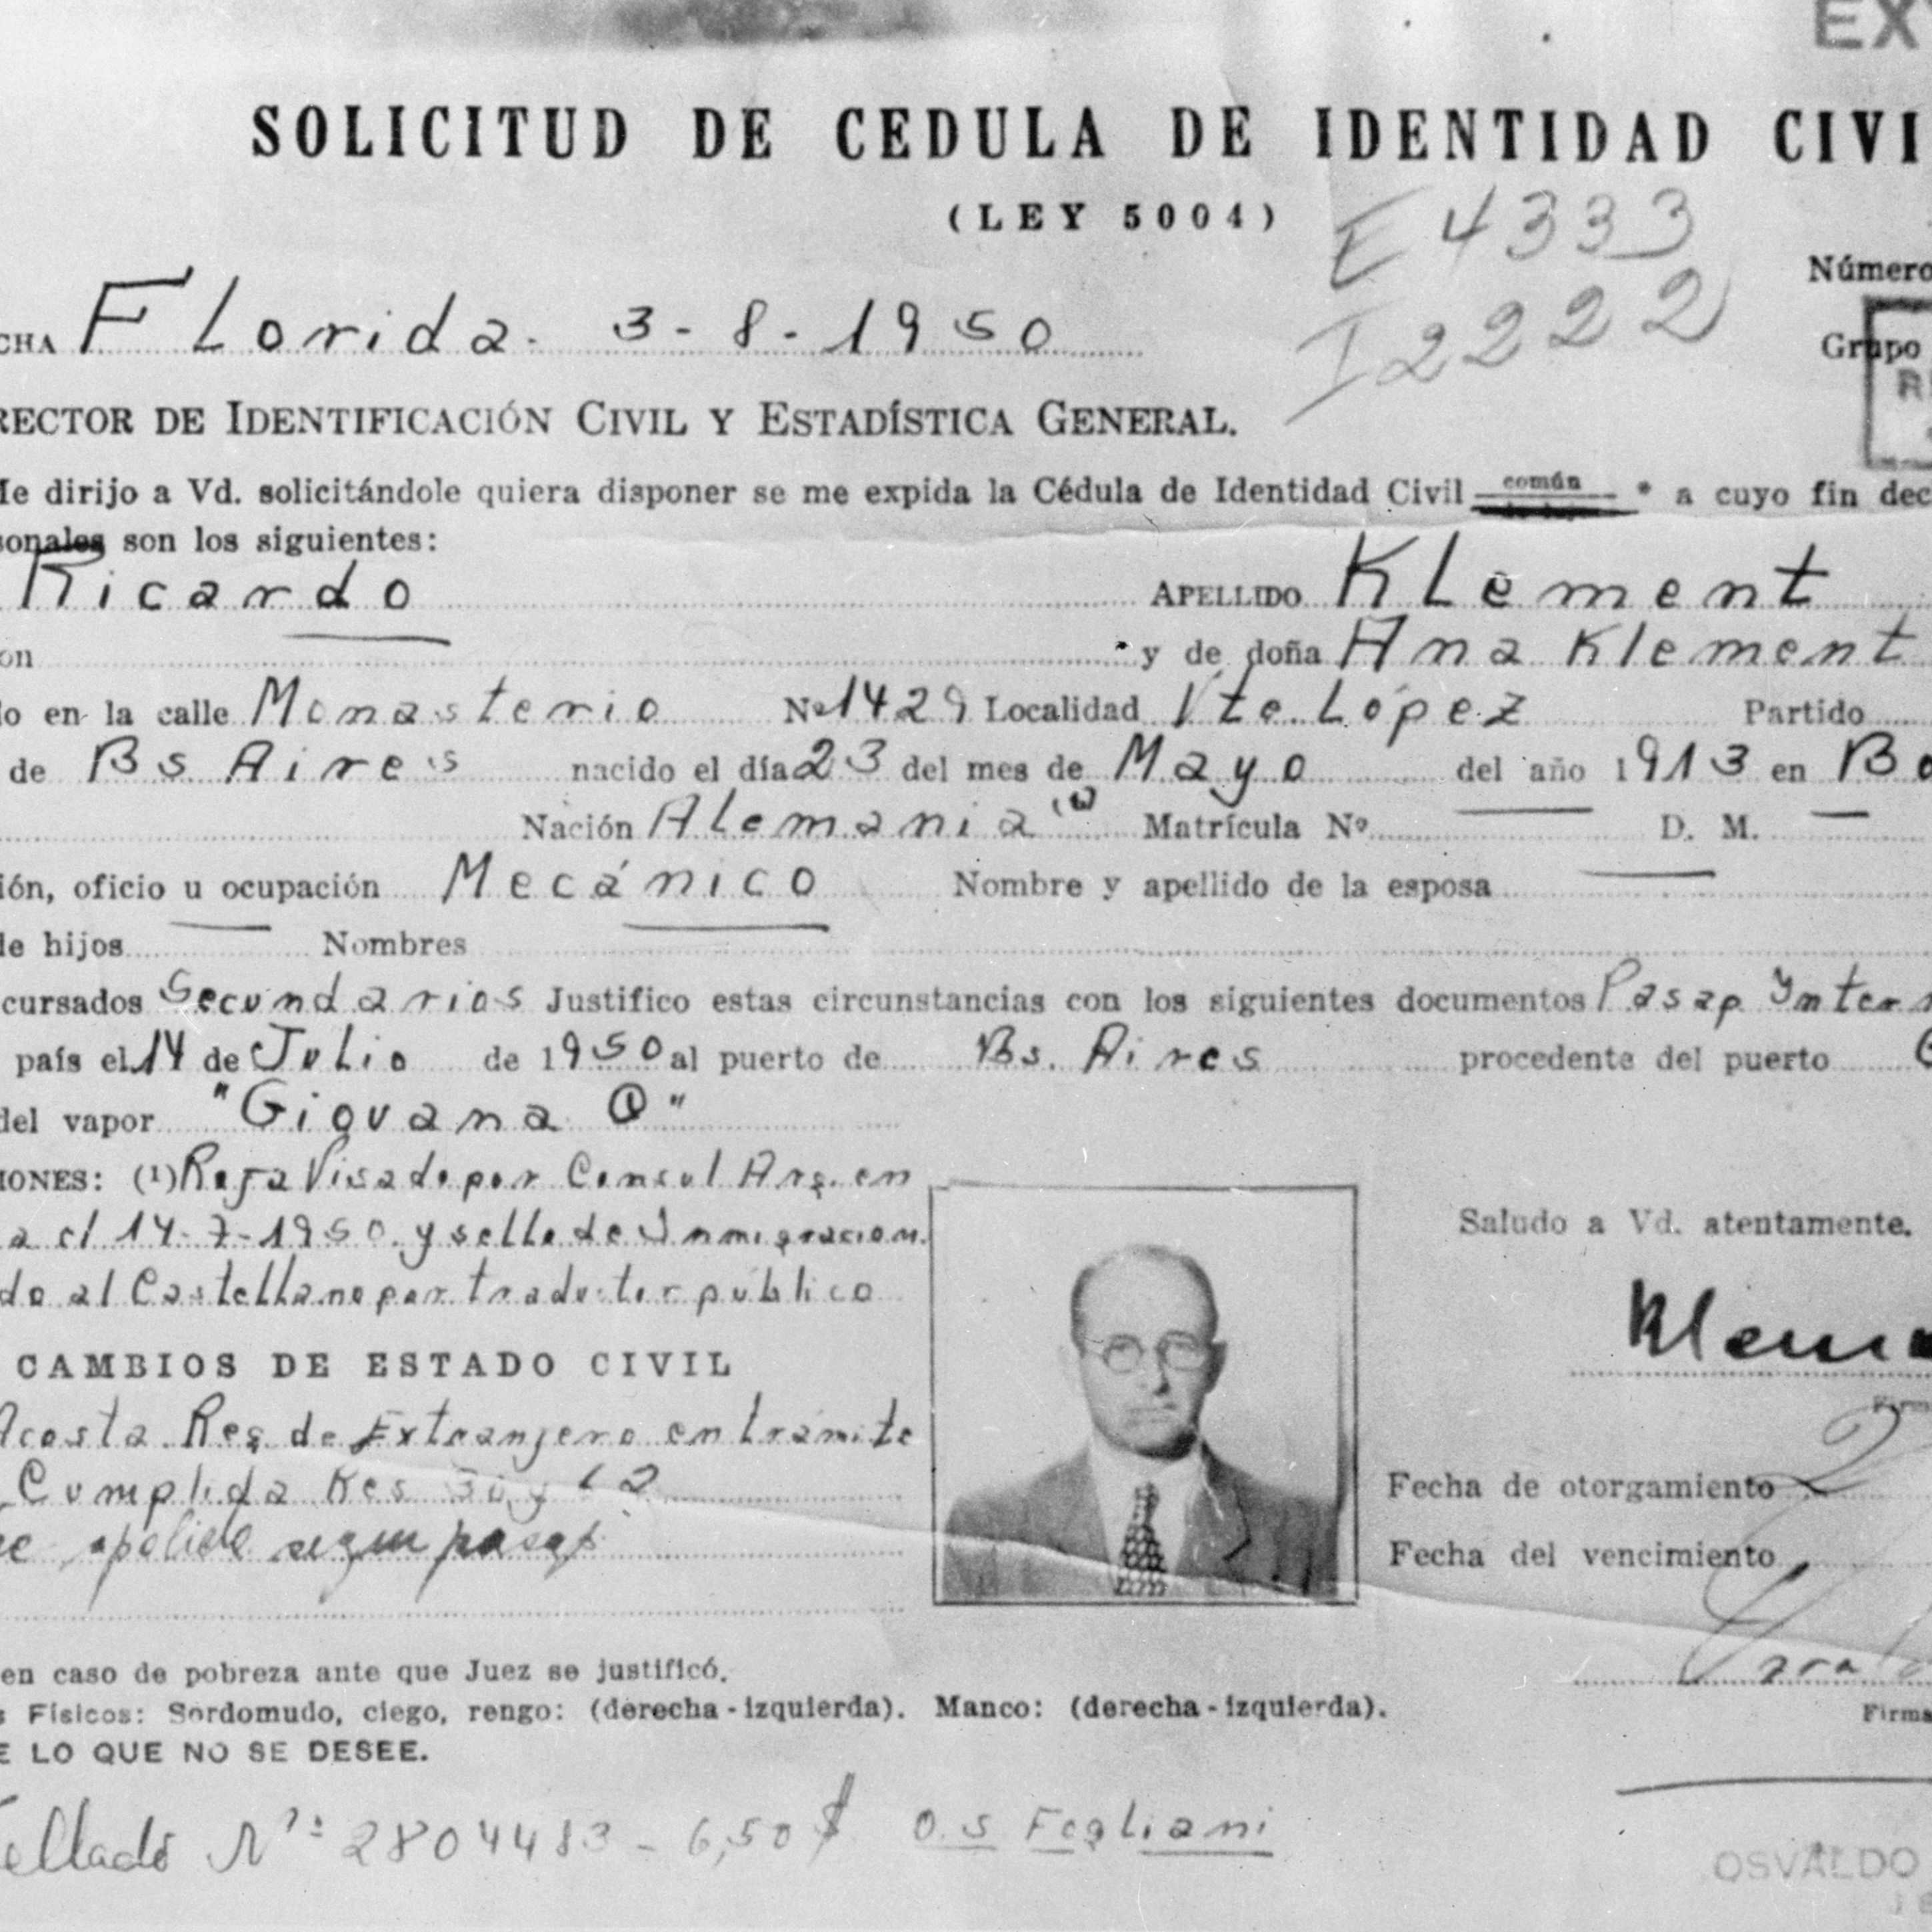 Why Were Nazis Accepted in Argentina After WWII?